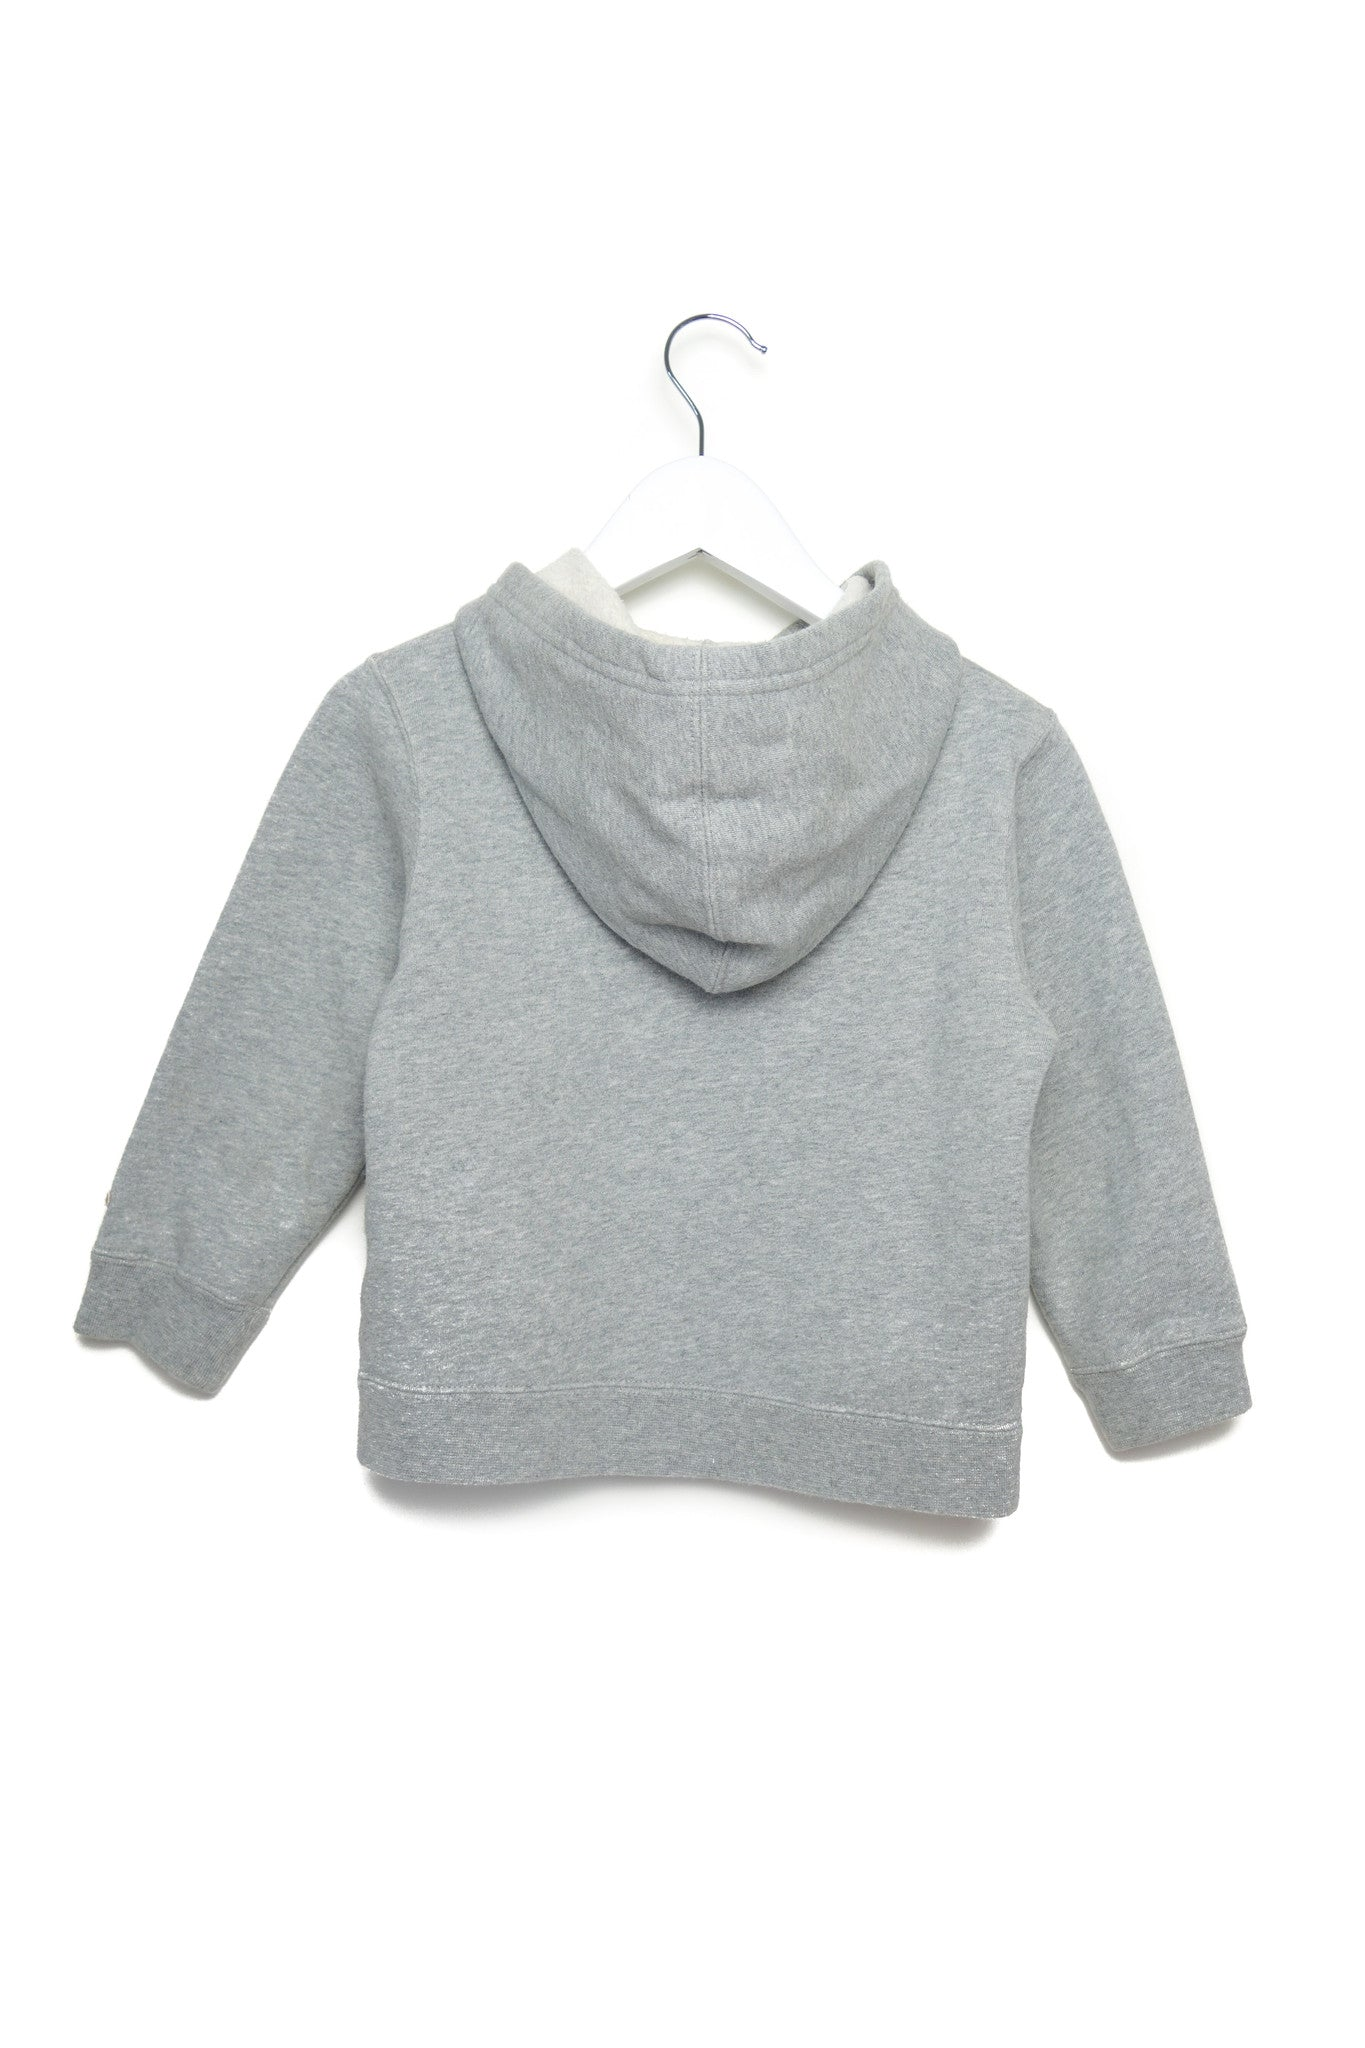 10001541 Roots Kids~Sweatshirt 4T at Retykle